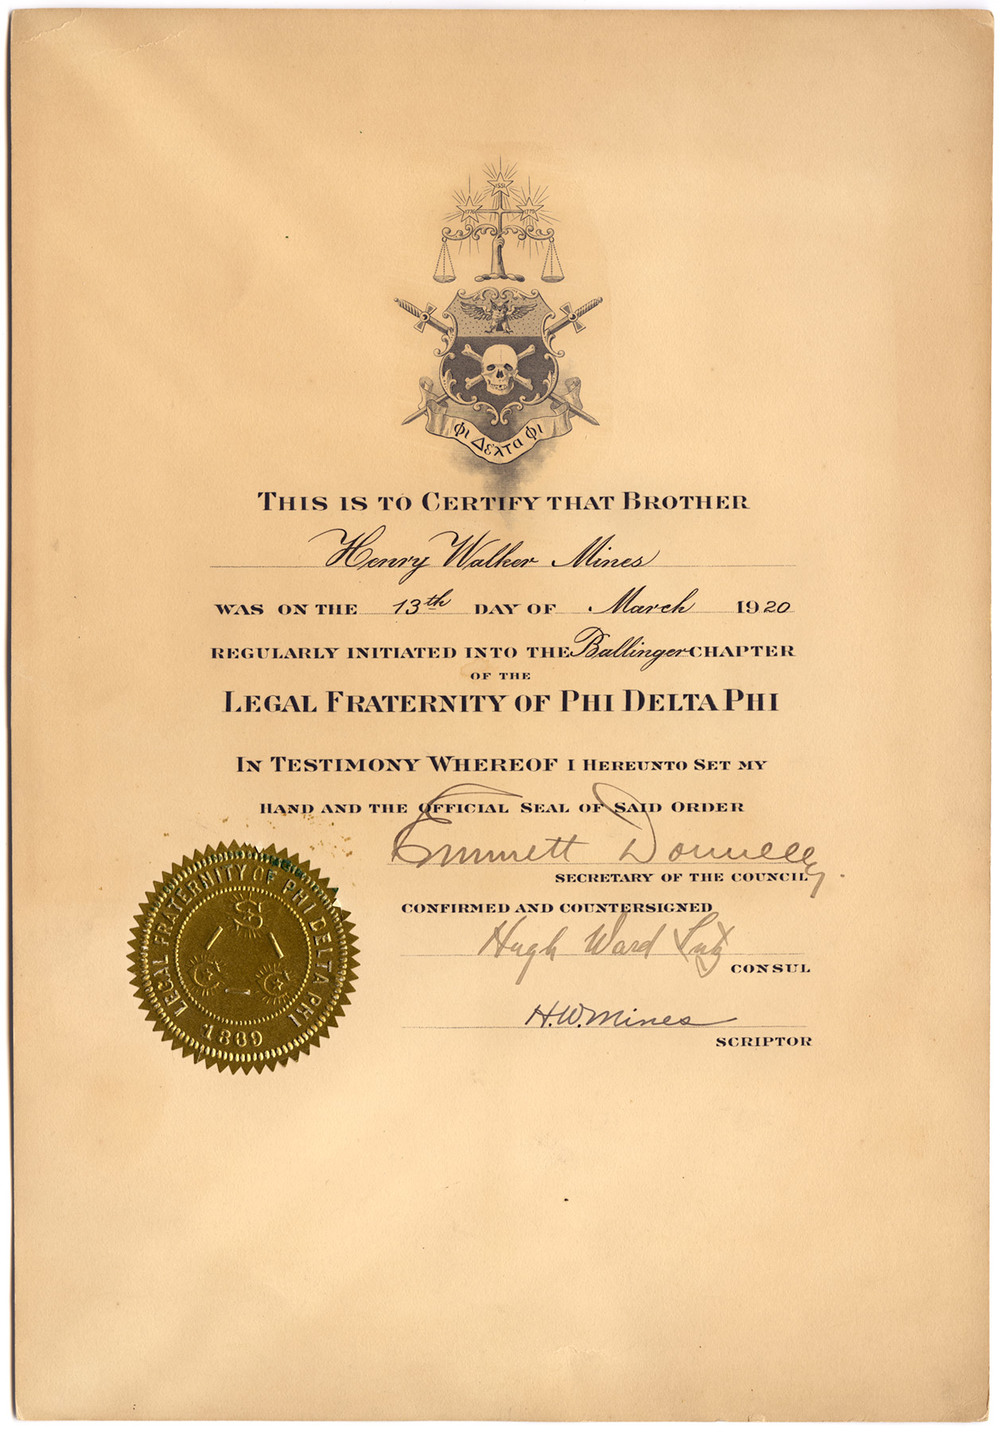 Henry Walker Mines - Phi Delta Phi Legal Fraternity - 1920